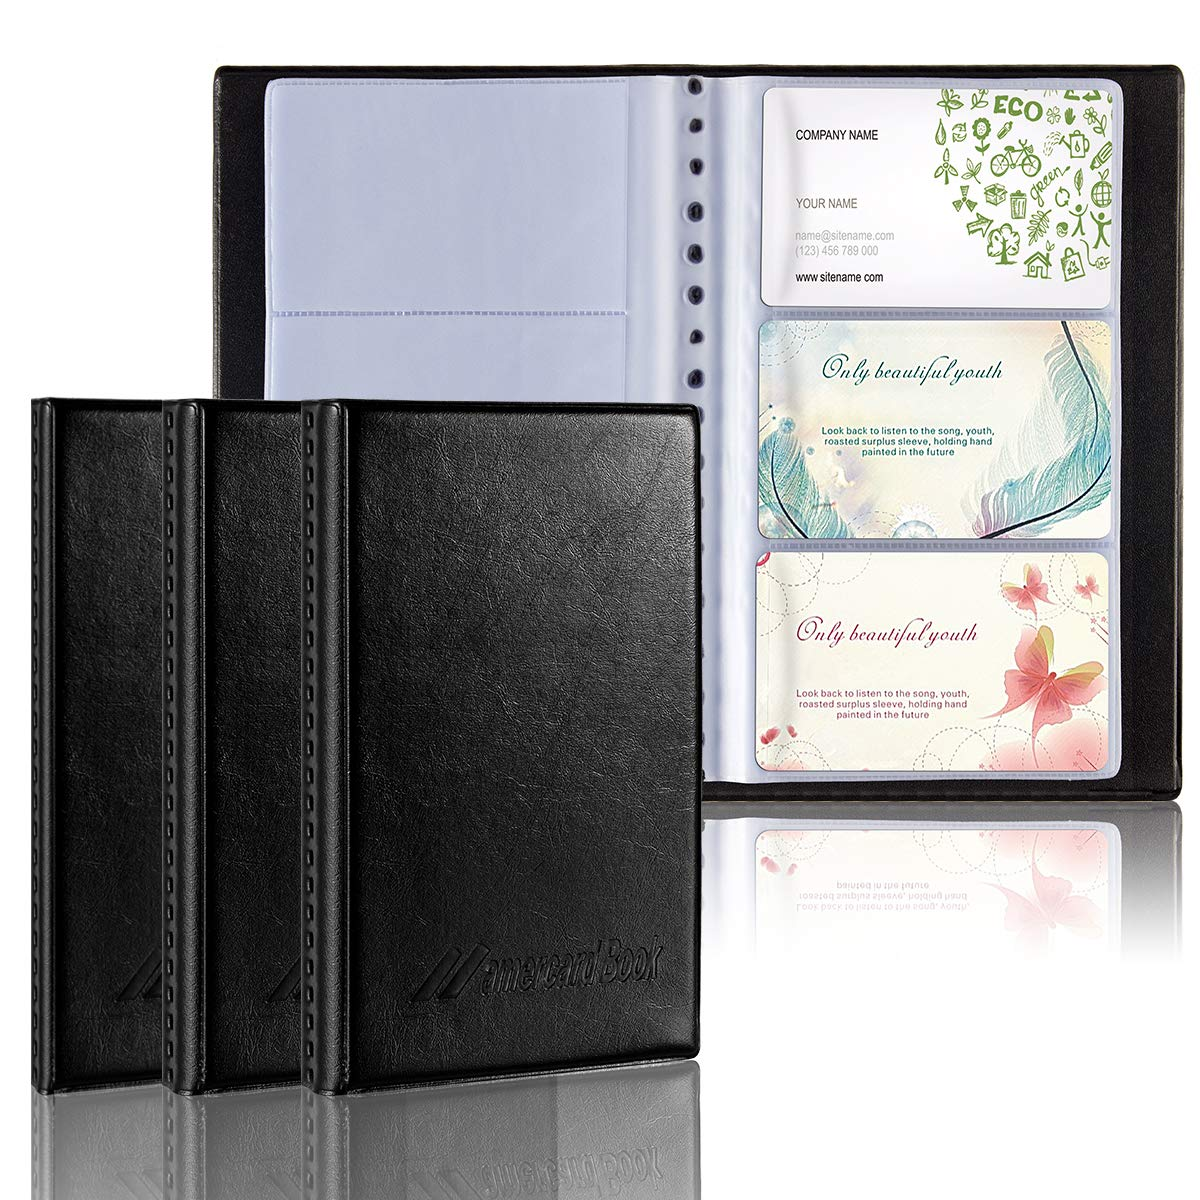 Anphsin 3 Pack Business Card Holder Book, PU Leather Card Organizer for Name Credit Office Business Card (Hold 120+240+300 Cards)